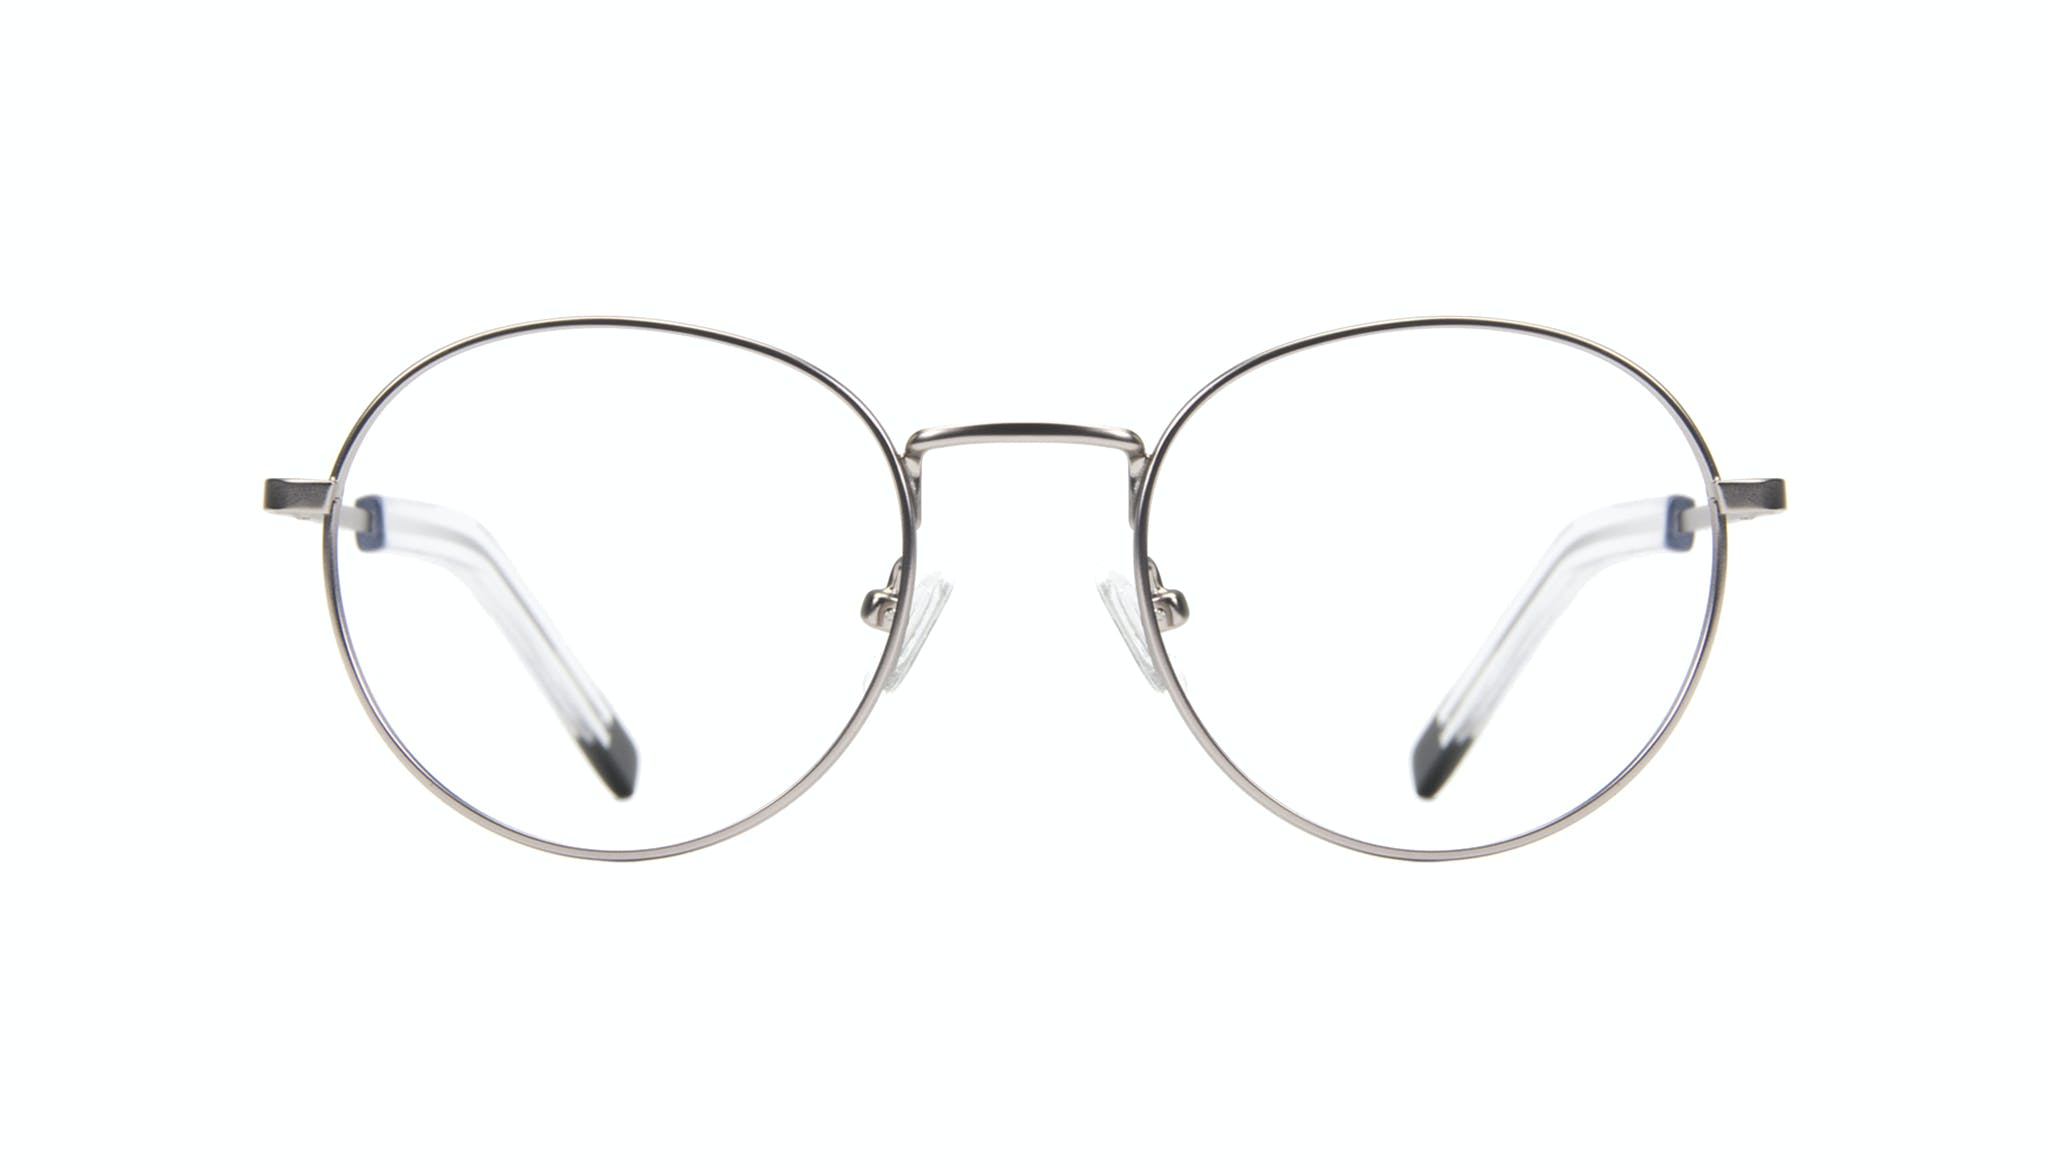 Affordable Fashion Glasses Round Eyeglasses Men Lean Steel